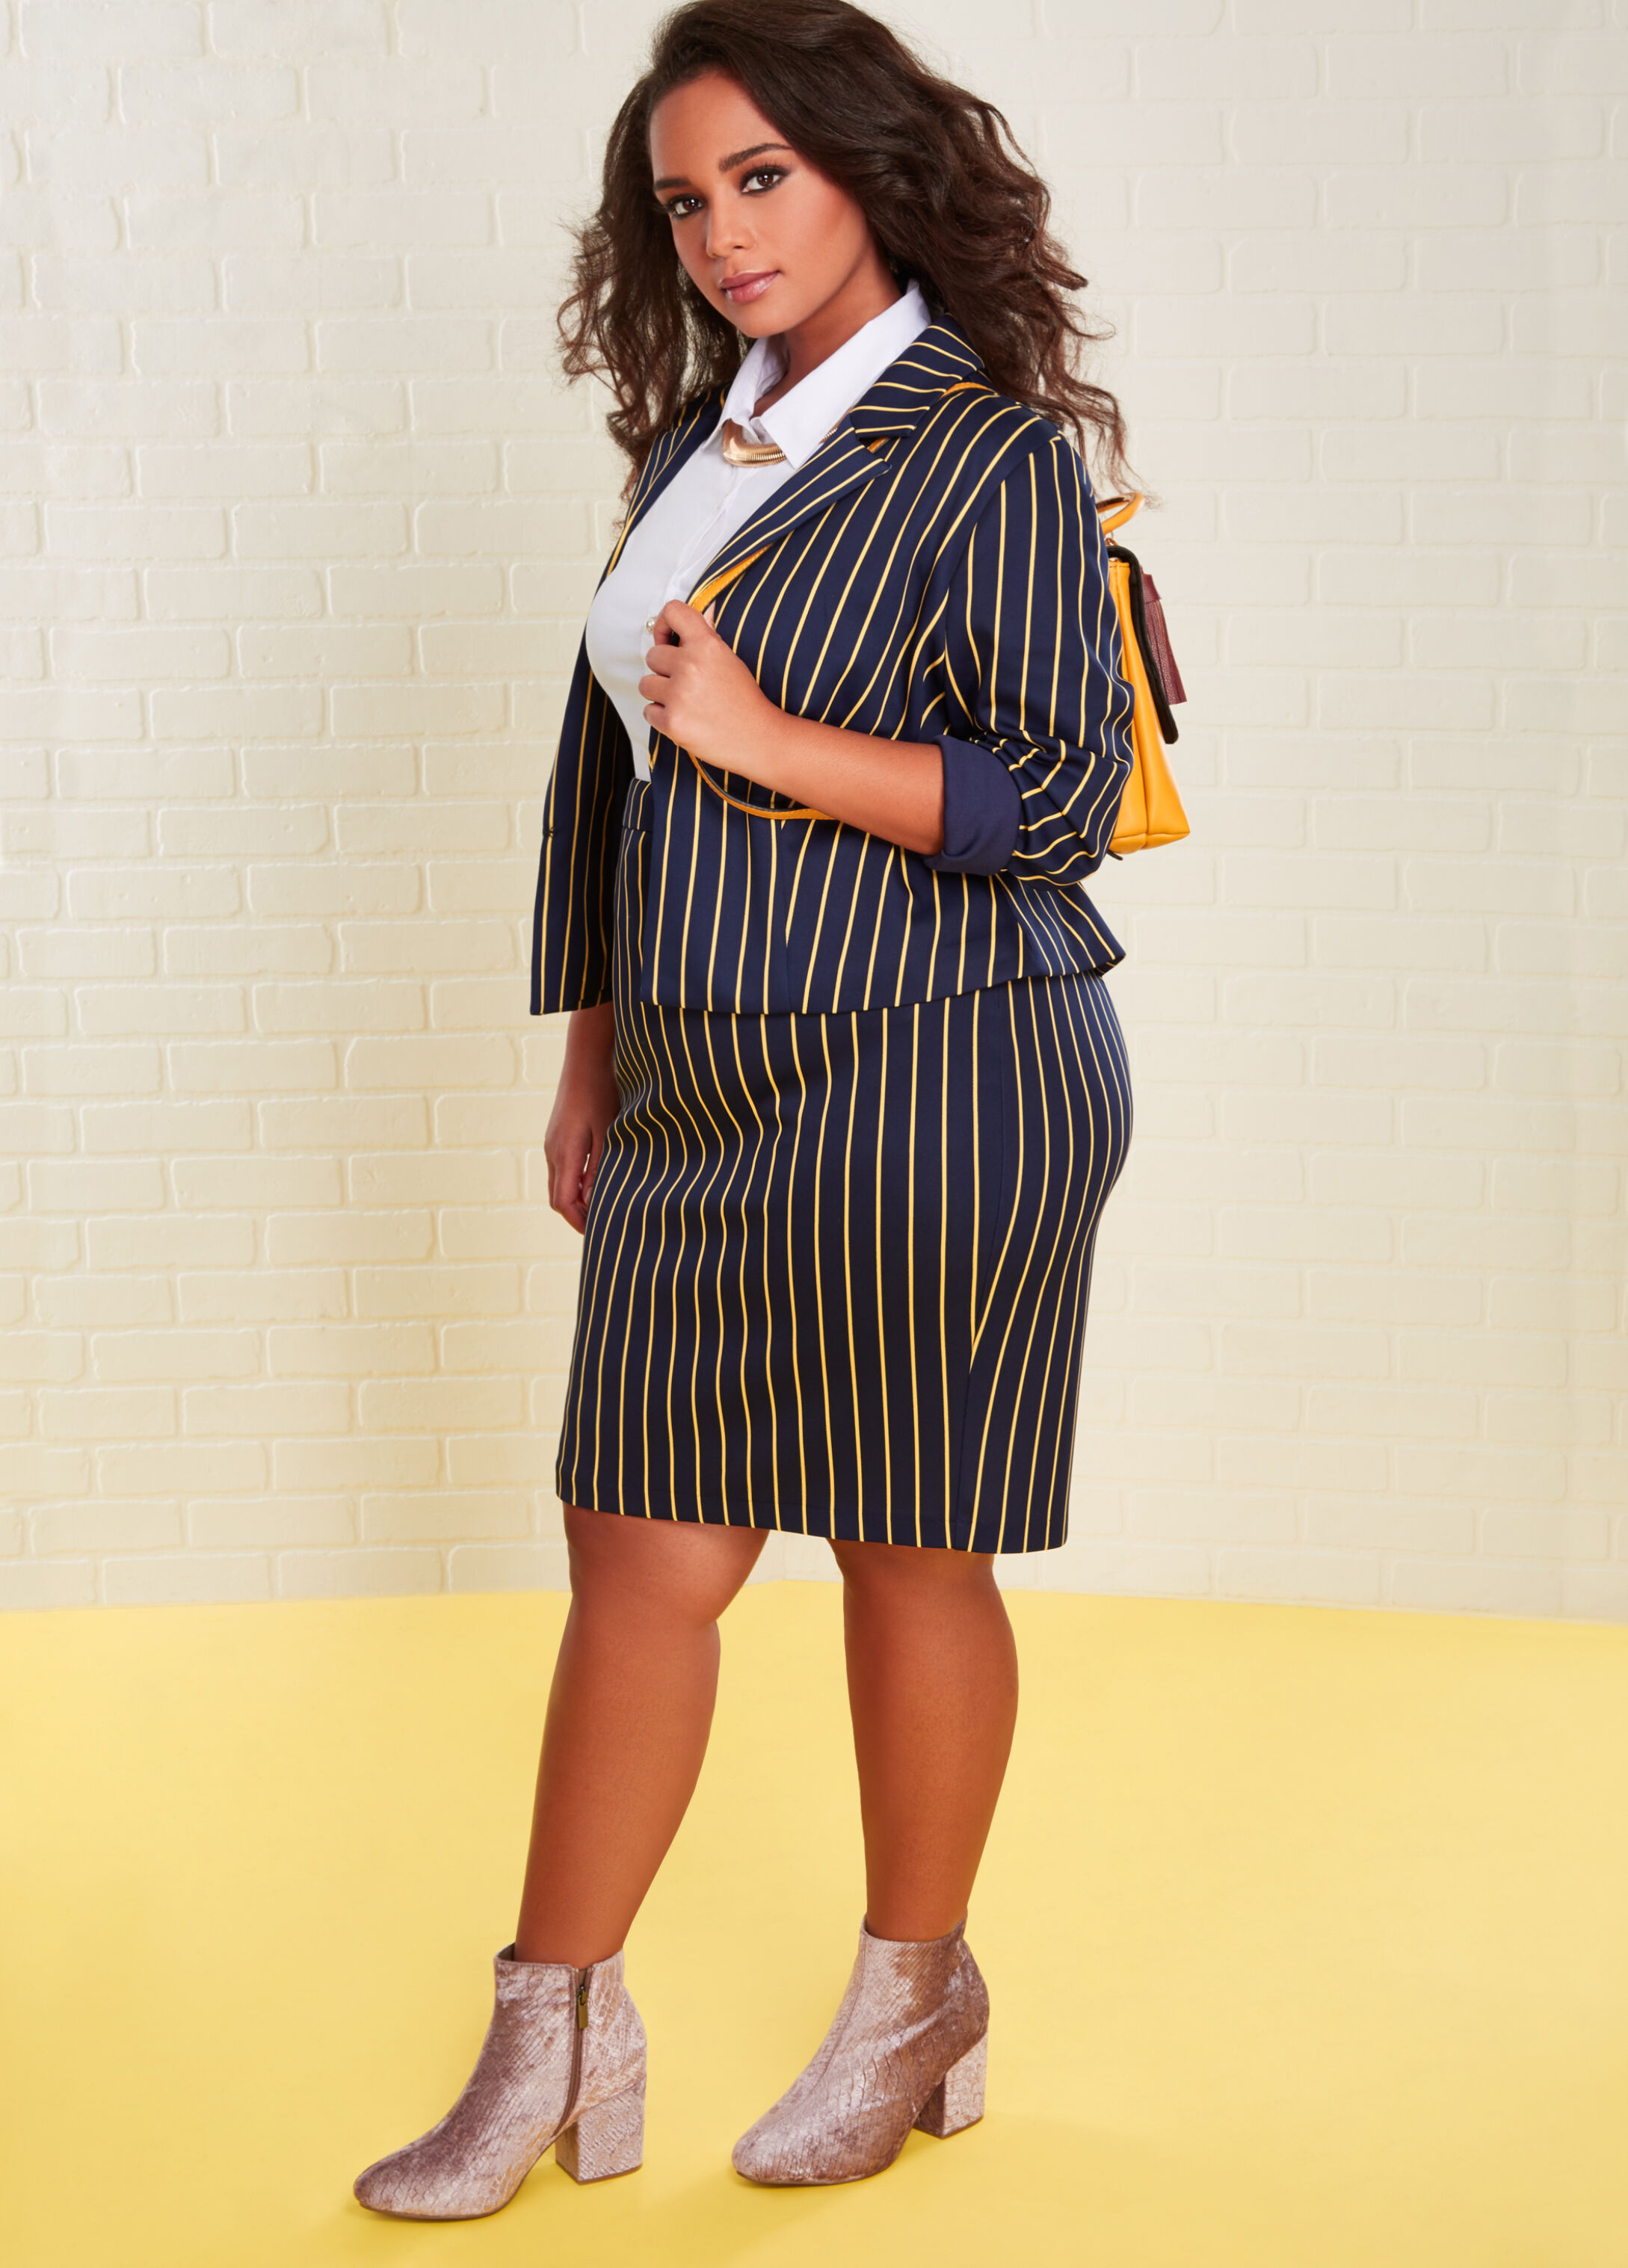 Plus Size Outfits - Striped Suit Set with Velvet Bootie